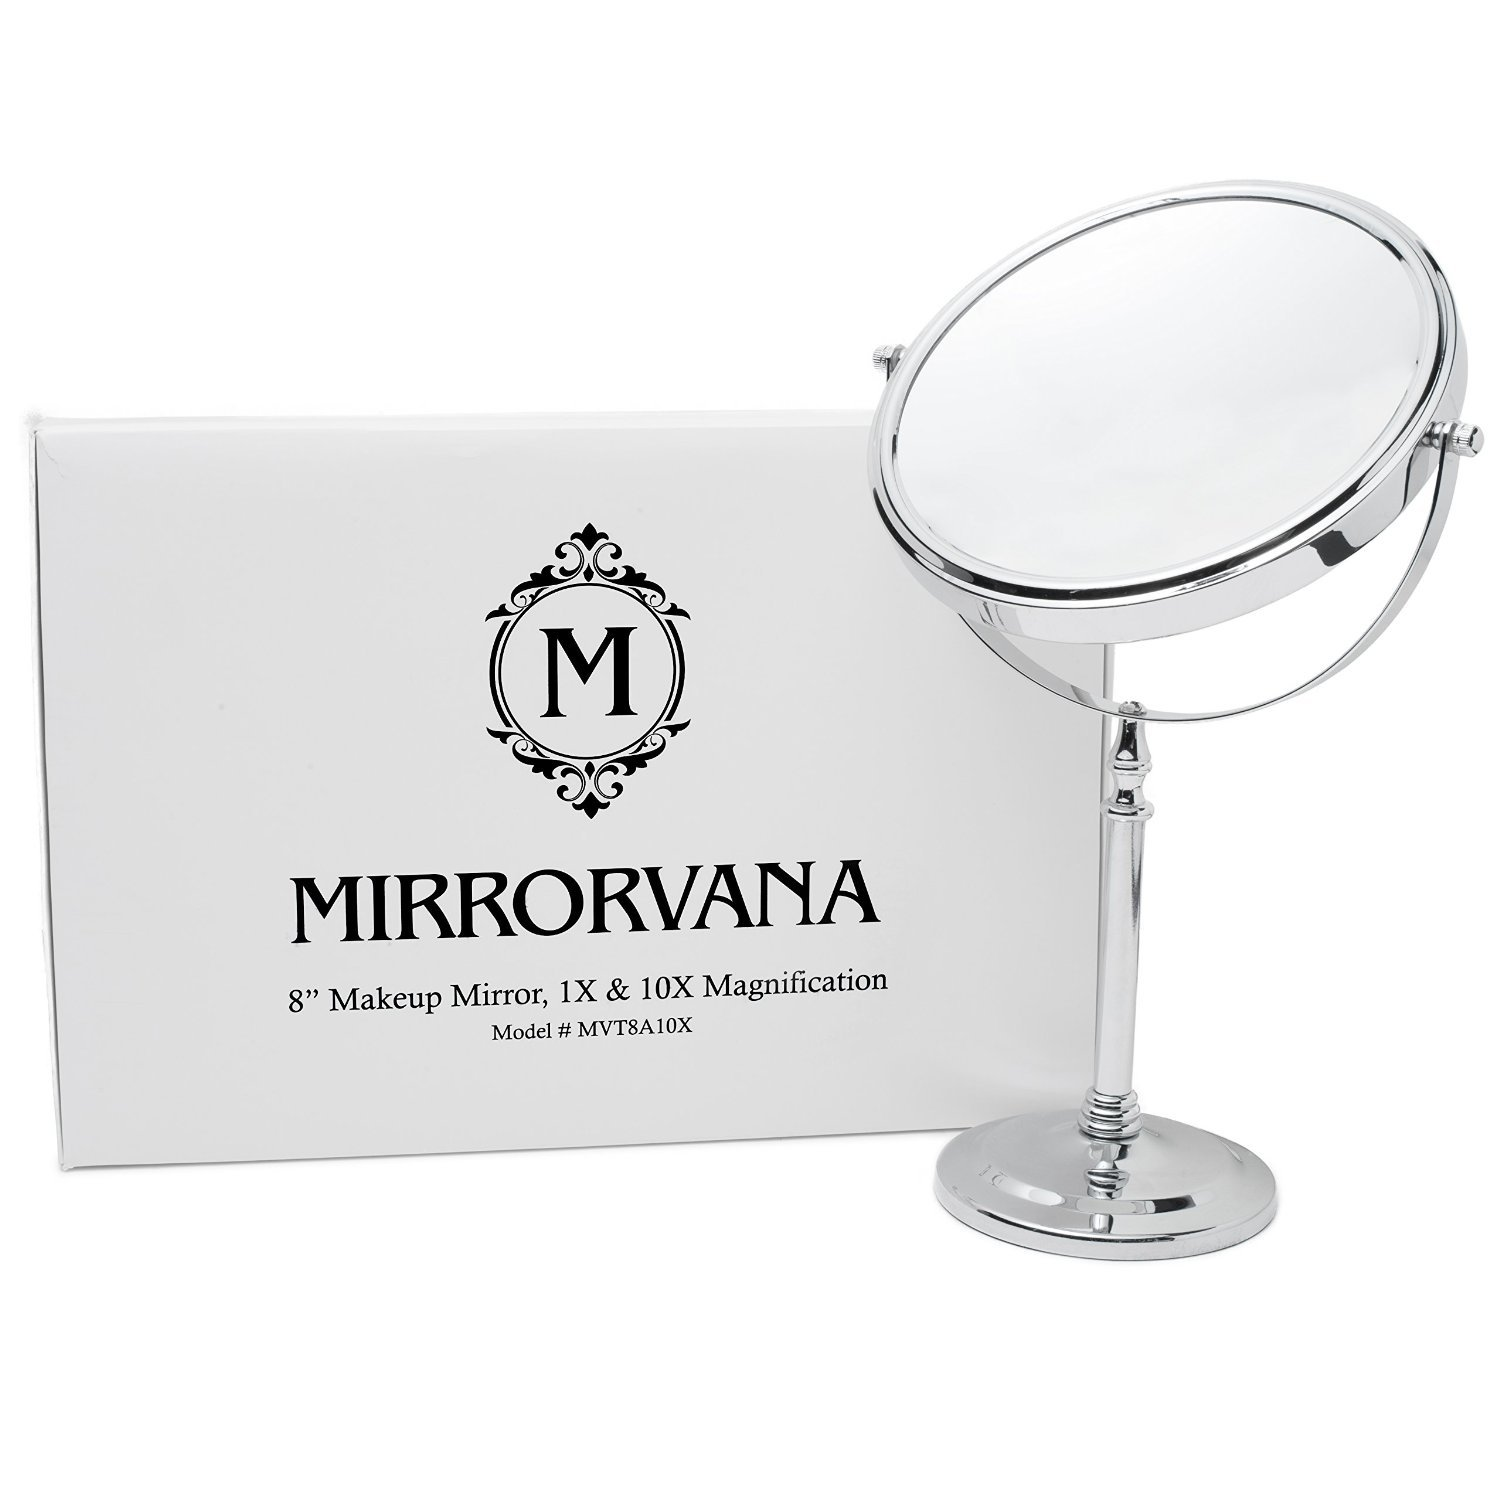 MIRRORVANA Large 8-Inch Vanity Makeup Mirror ~ Double-Sided 1X and 10X Magnifying Mirrors ~ Perfect for Bedroom or Bathroom Vanity